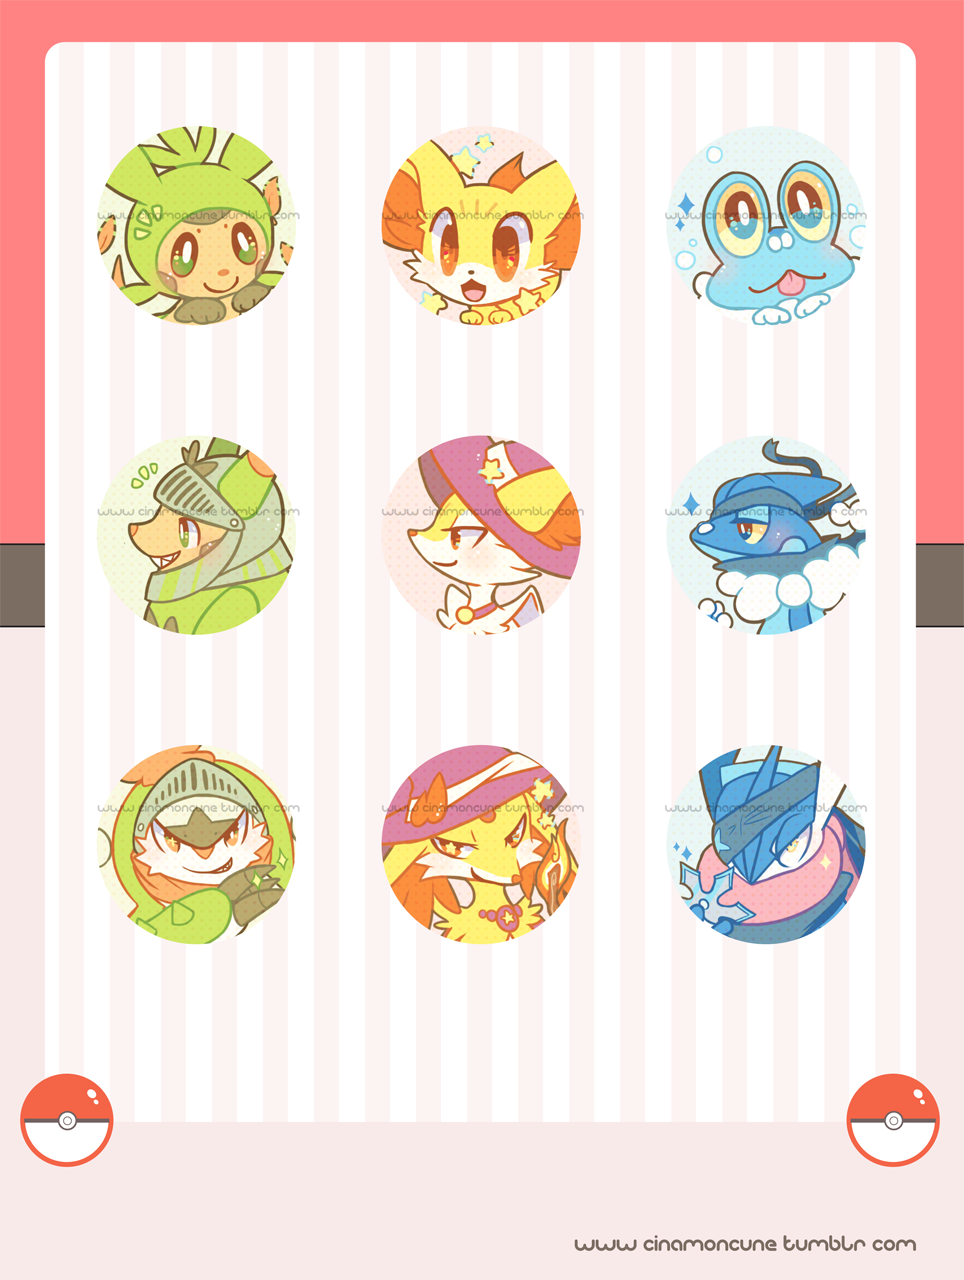 Kalos Starters Buttons